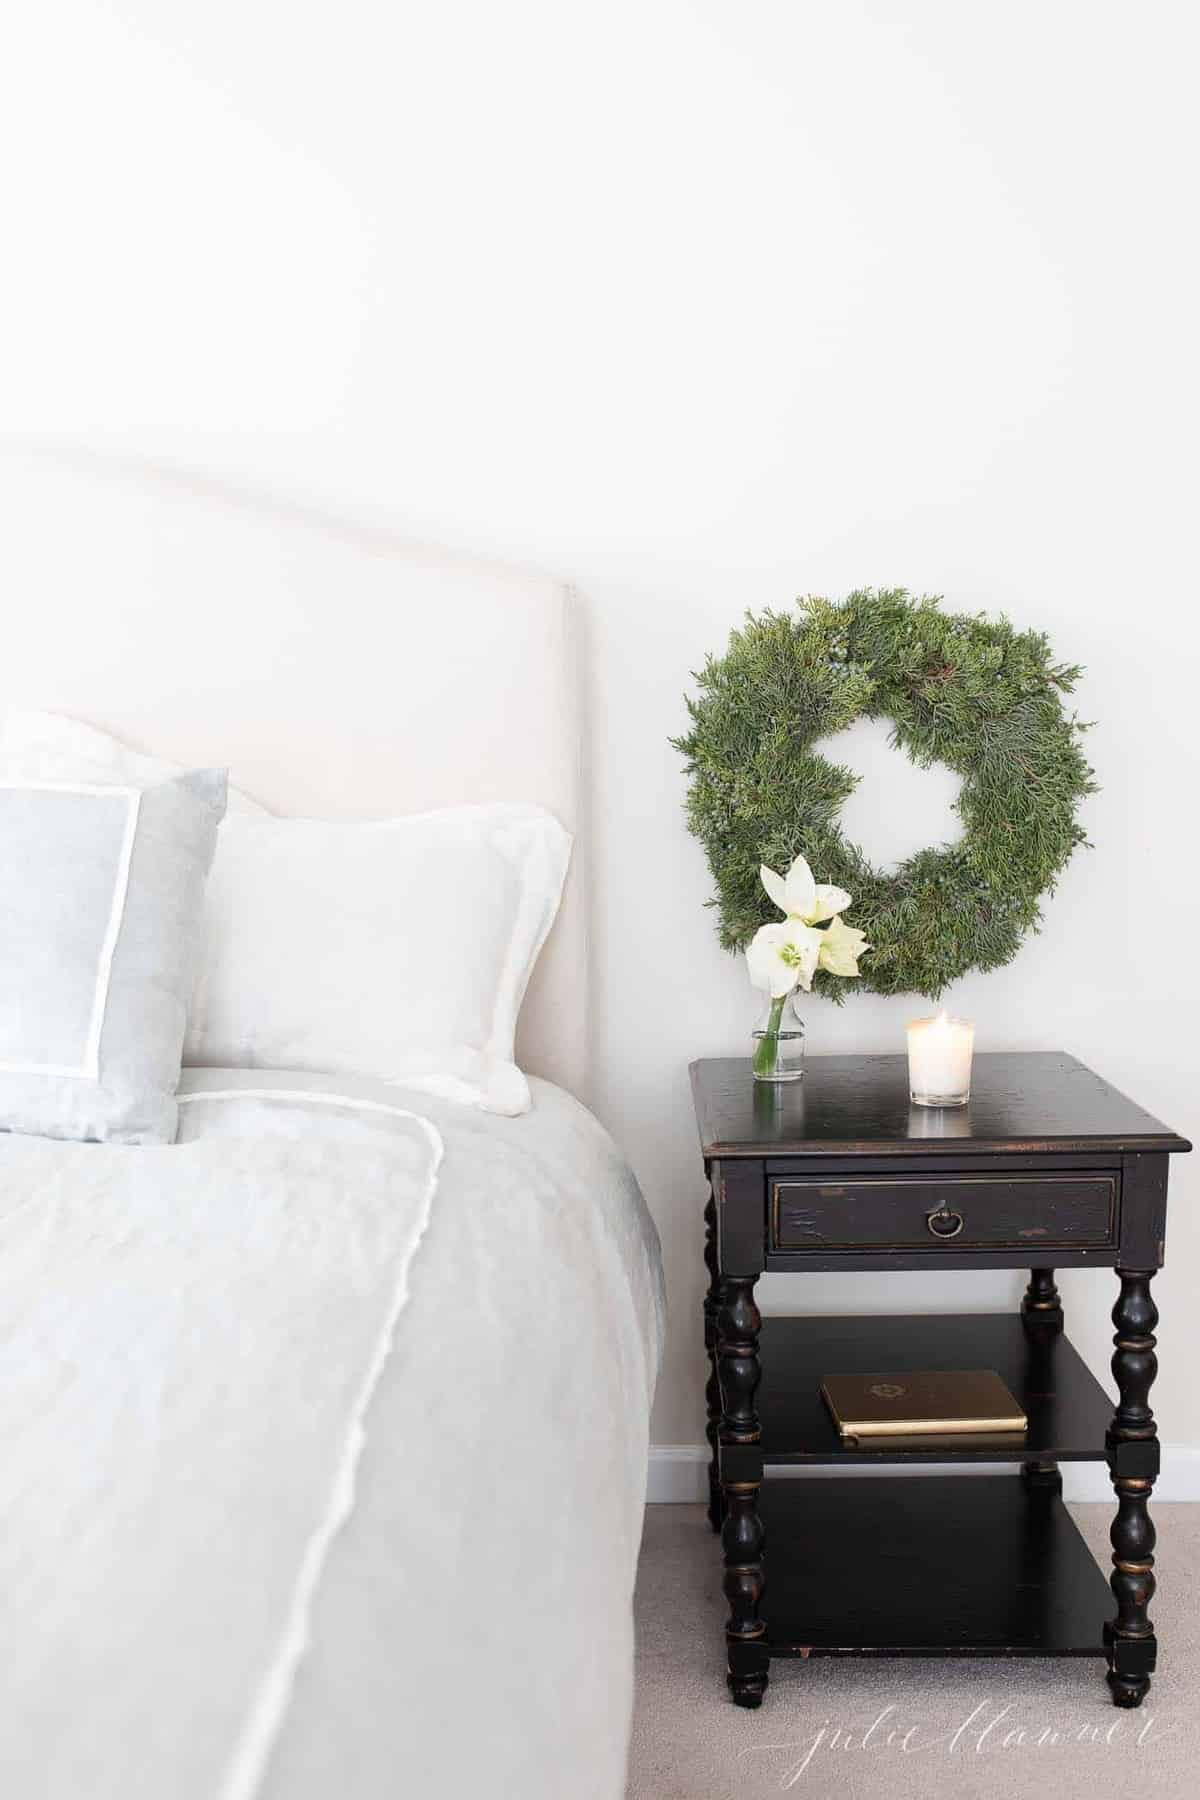 A soft blue and white bed with a black nightstand and Christmas wreath above.